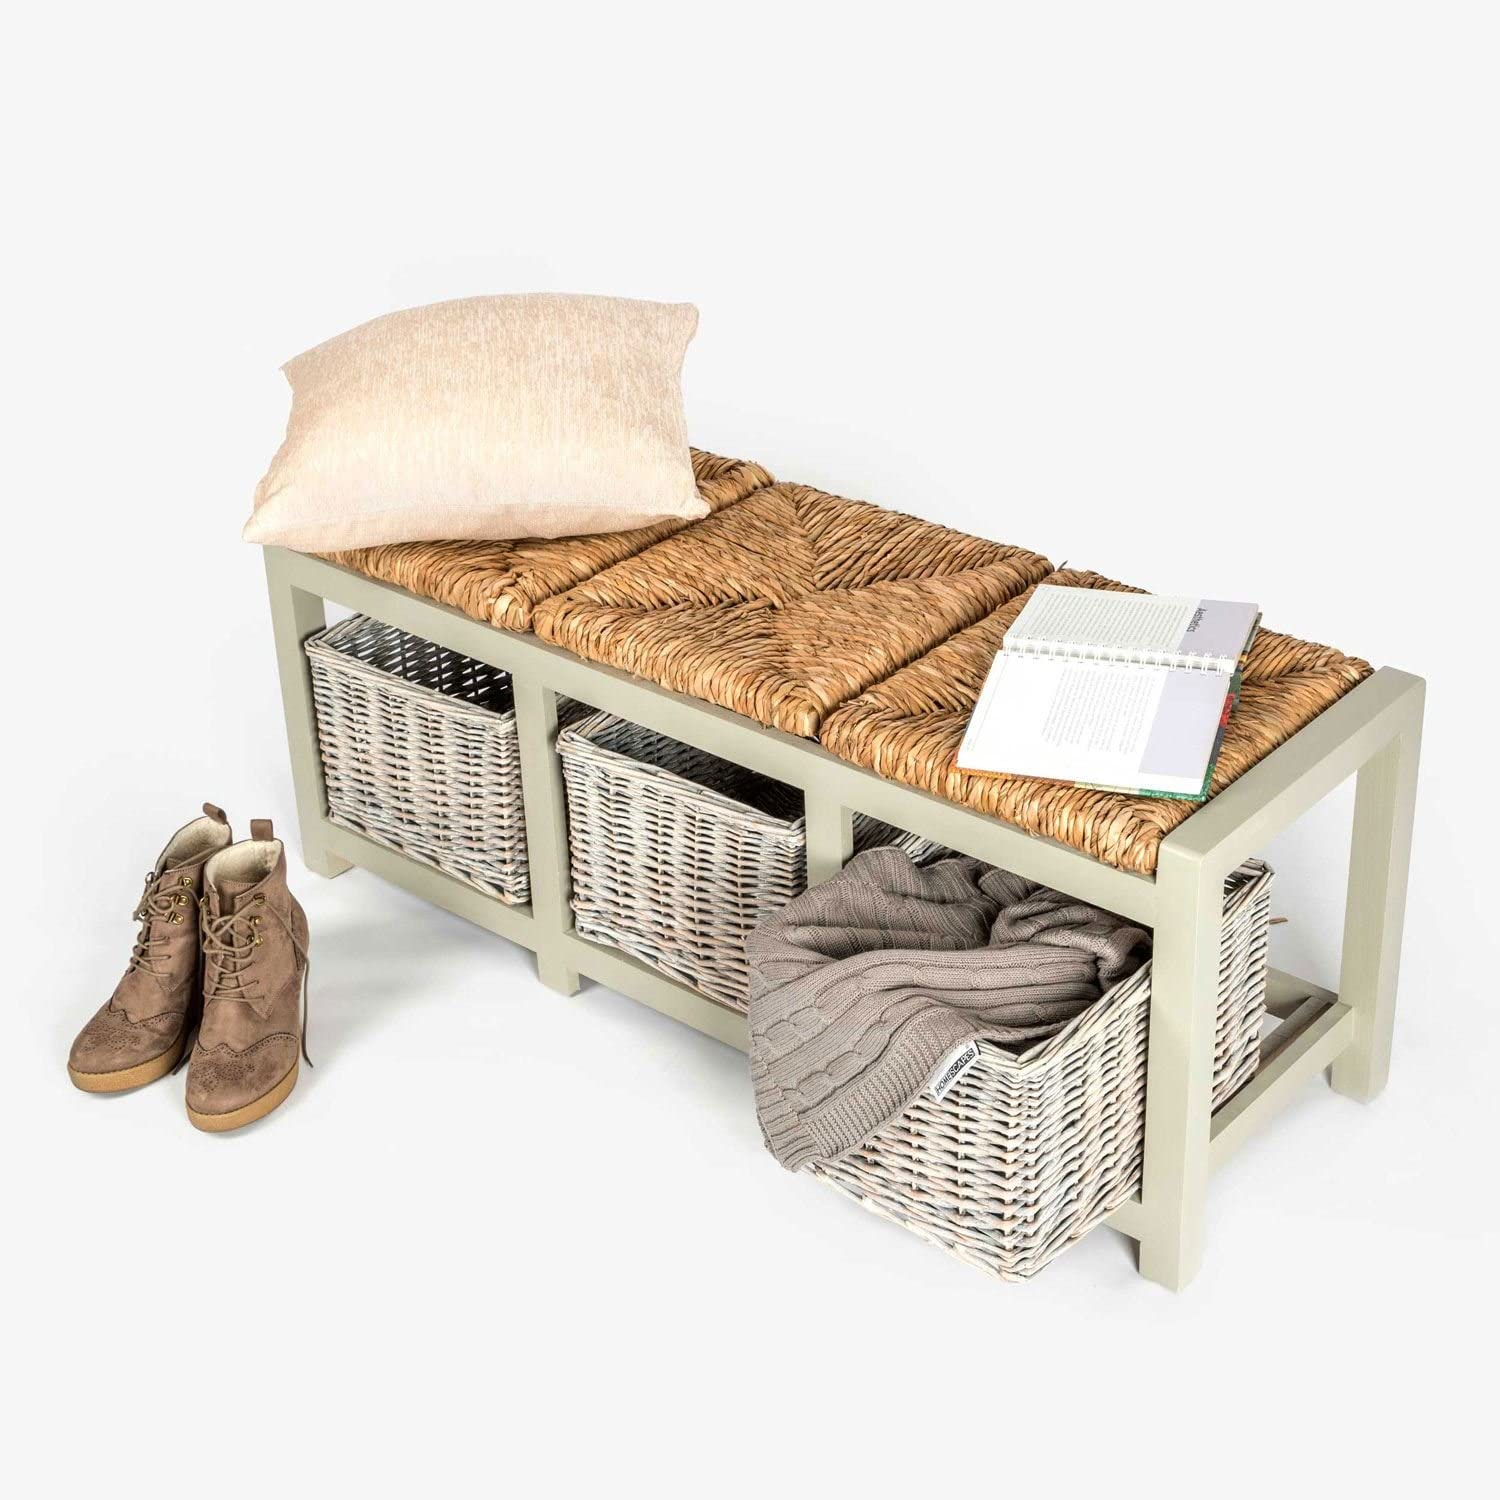 HOMESCAPES Grey Three Seater Wooden Storage Unit Hallway or Dining Room Bench with Wicker Storage Baskets and Seats